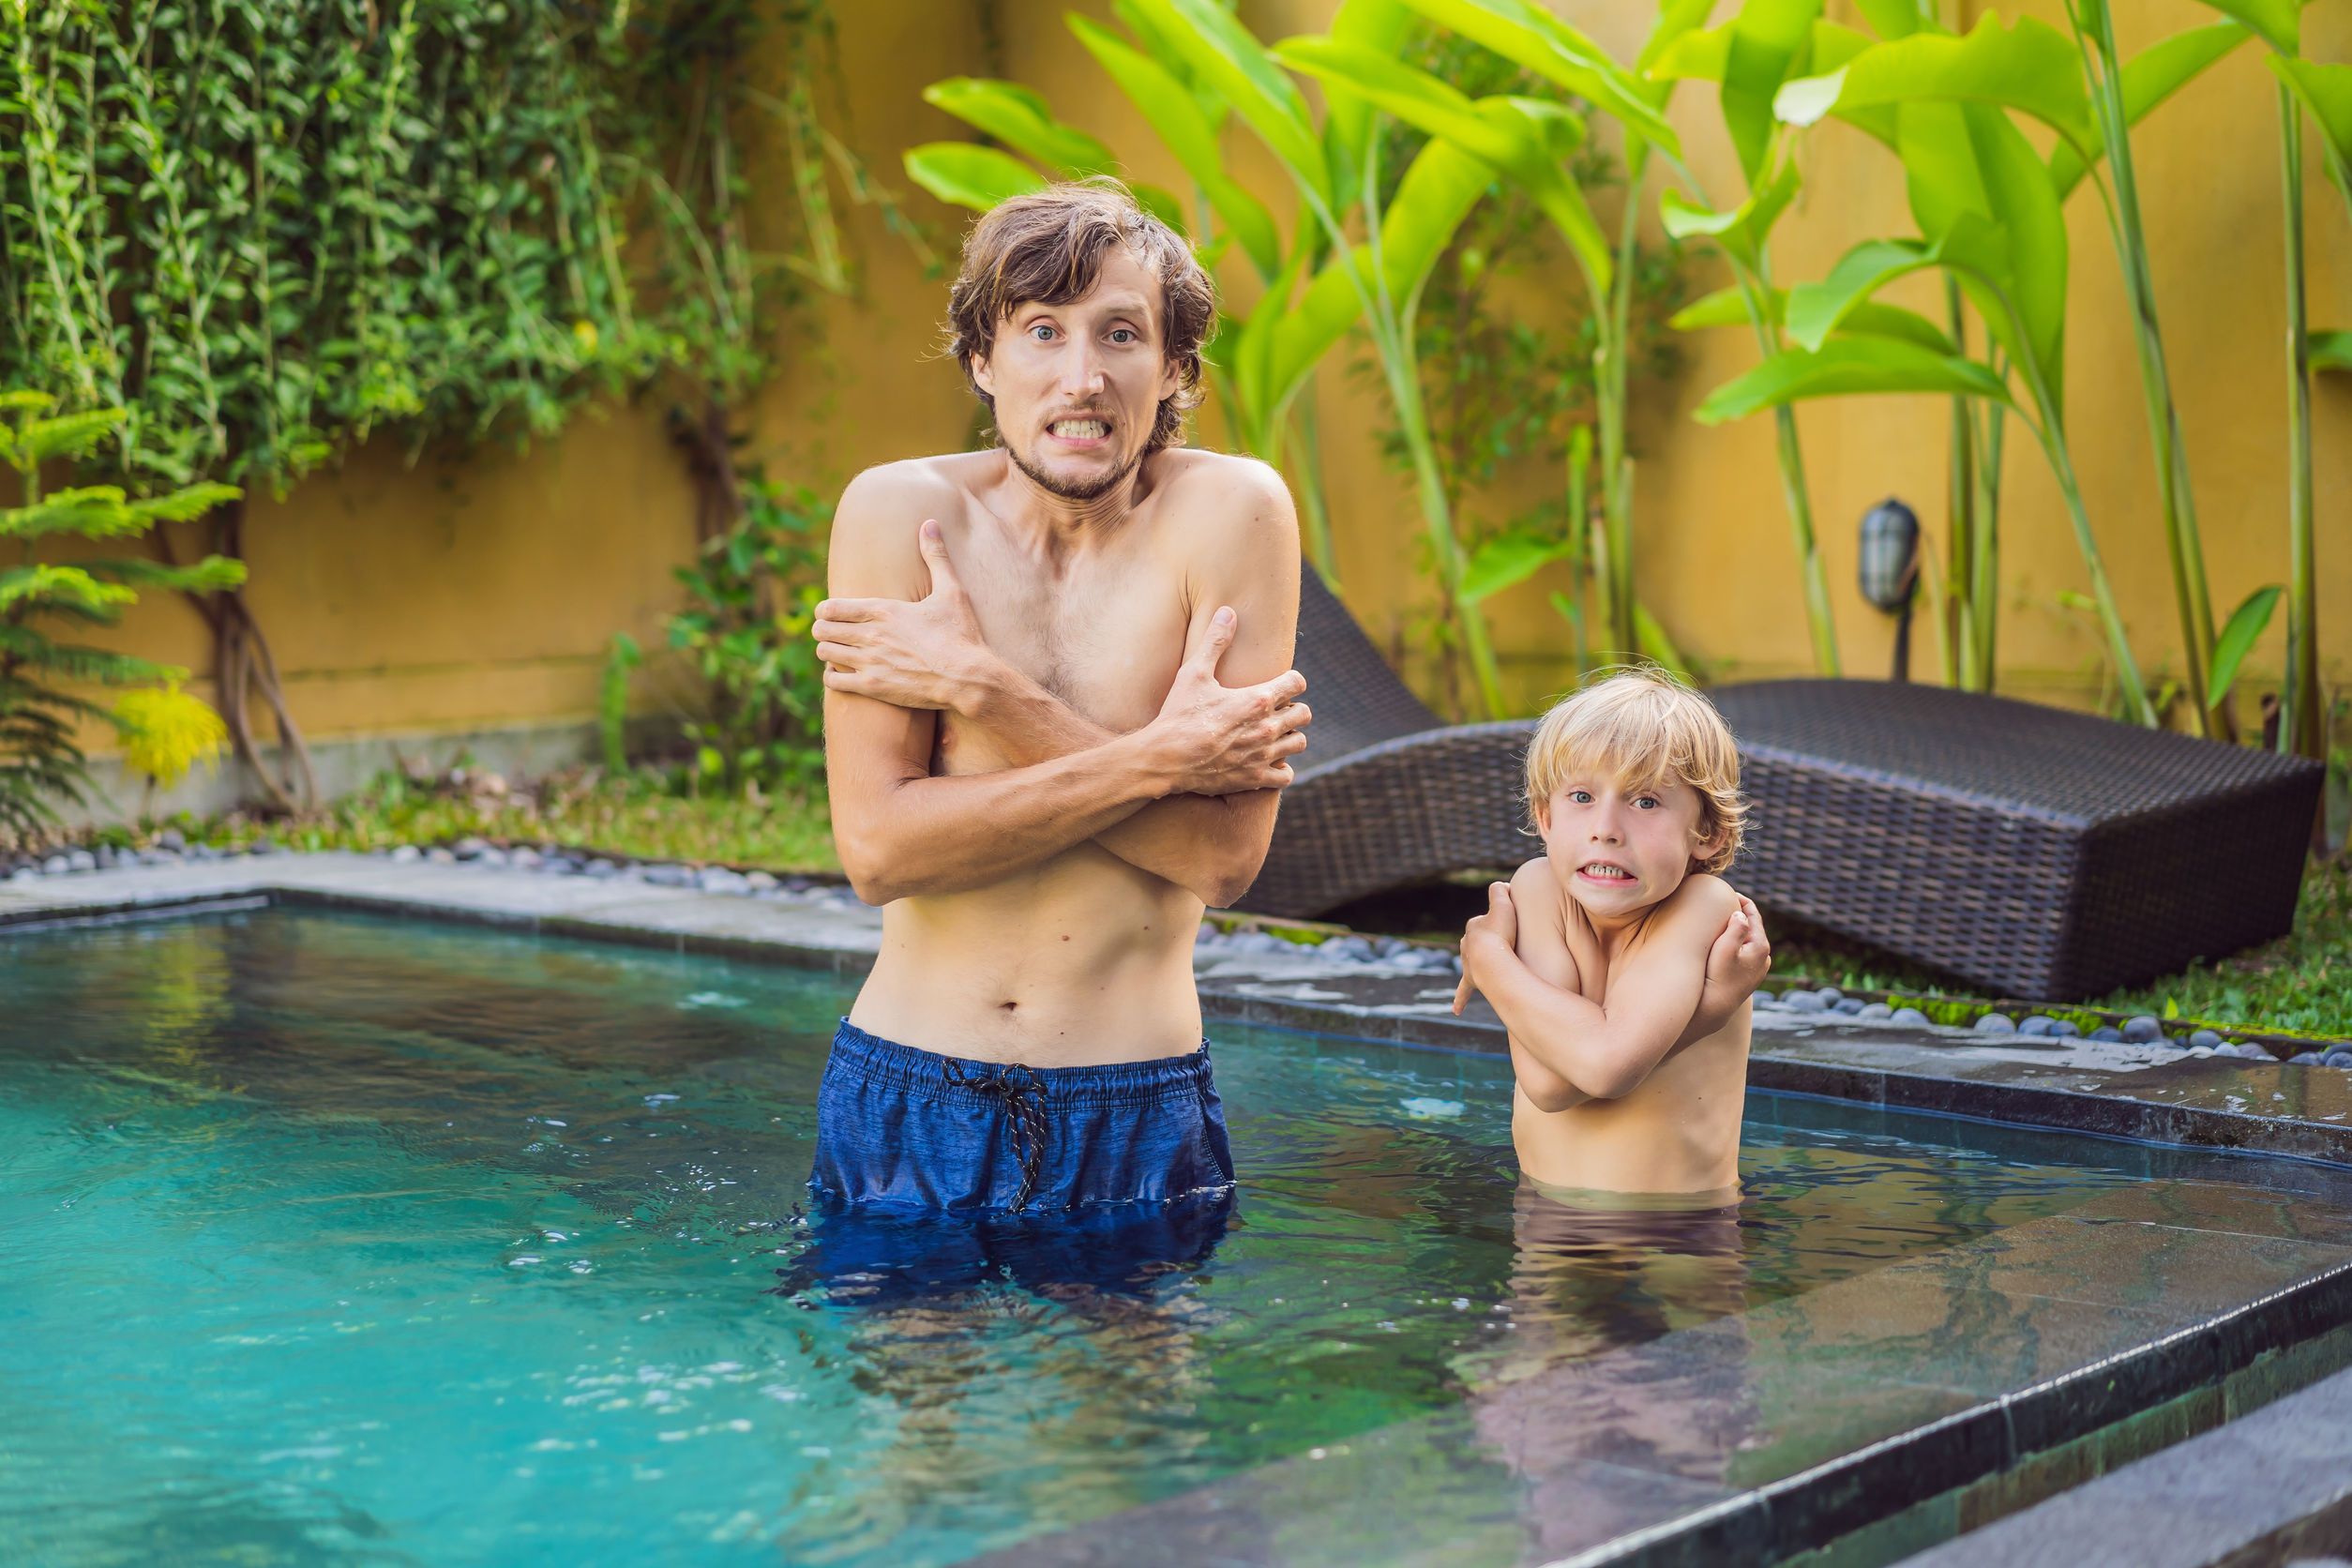 Dad and son was frozen in the pool. Very cold water in the pool. Need heated water.